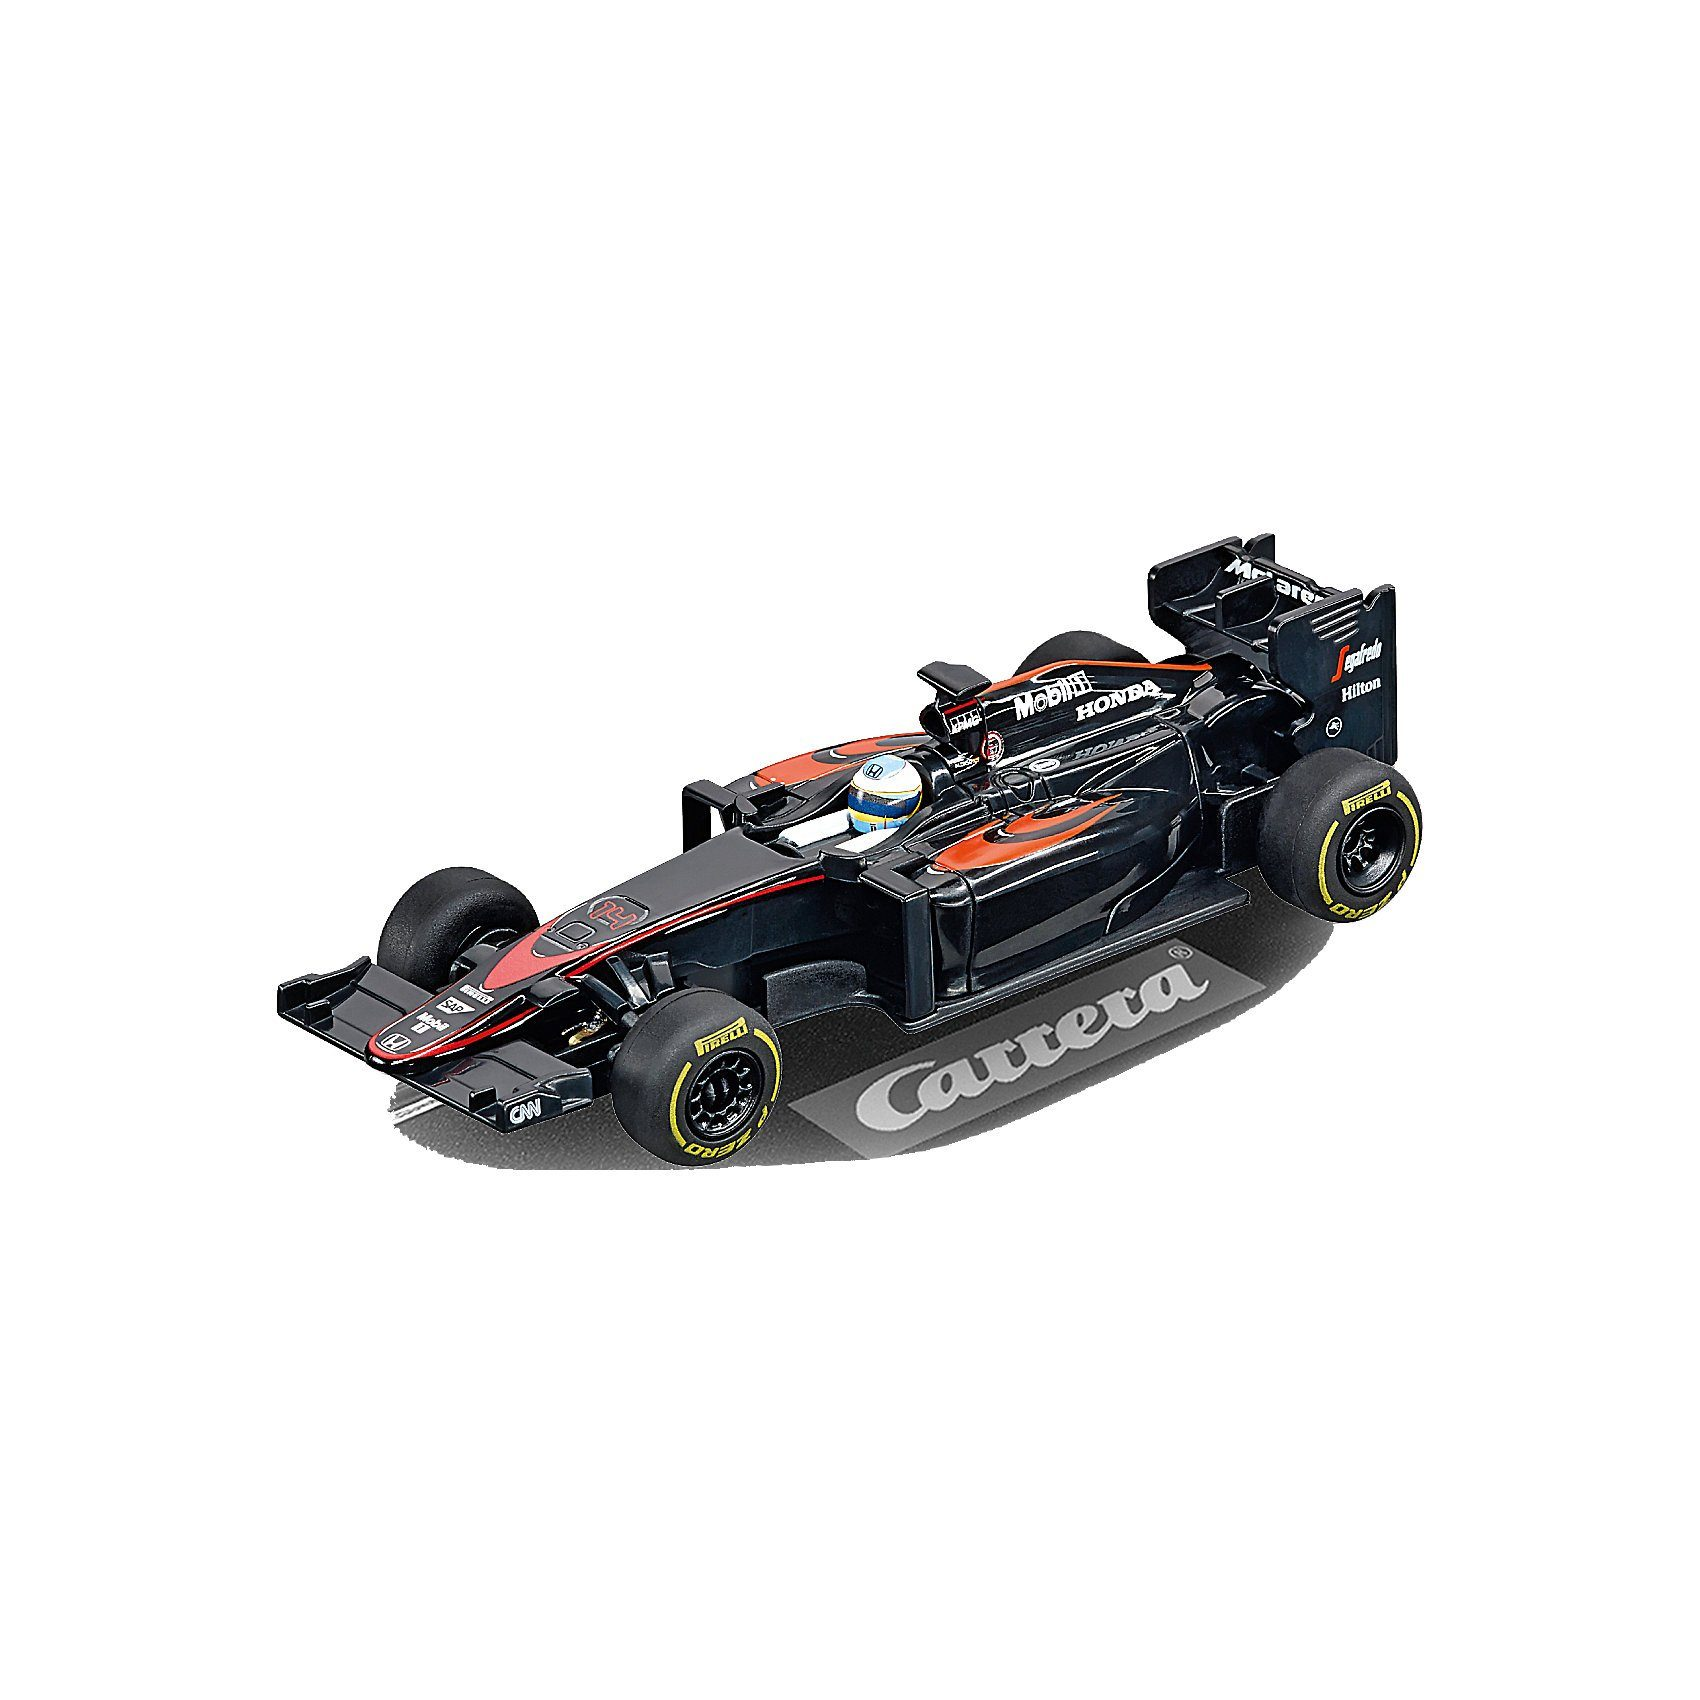 "Carrera GO!!! 64073 McLaren Honda MP430 ""F.Alonso, No.14"""